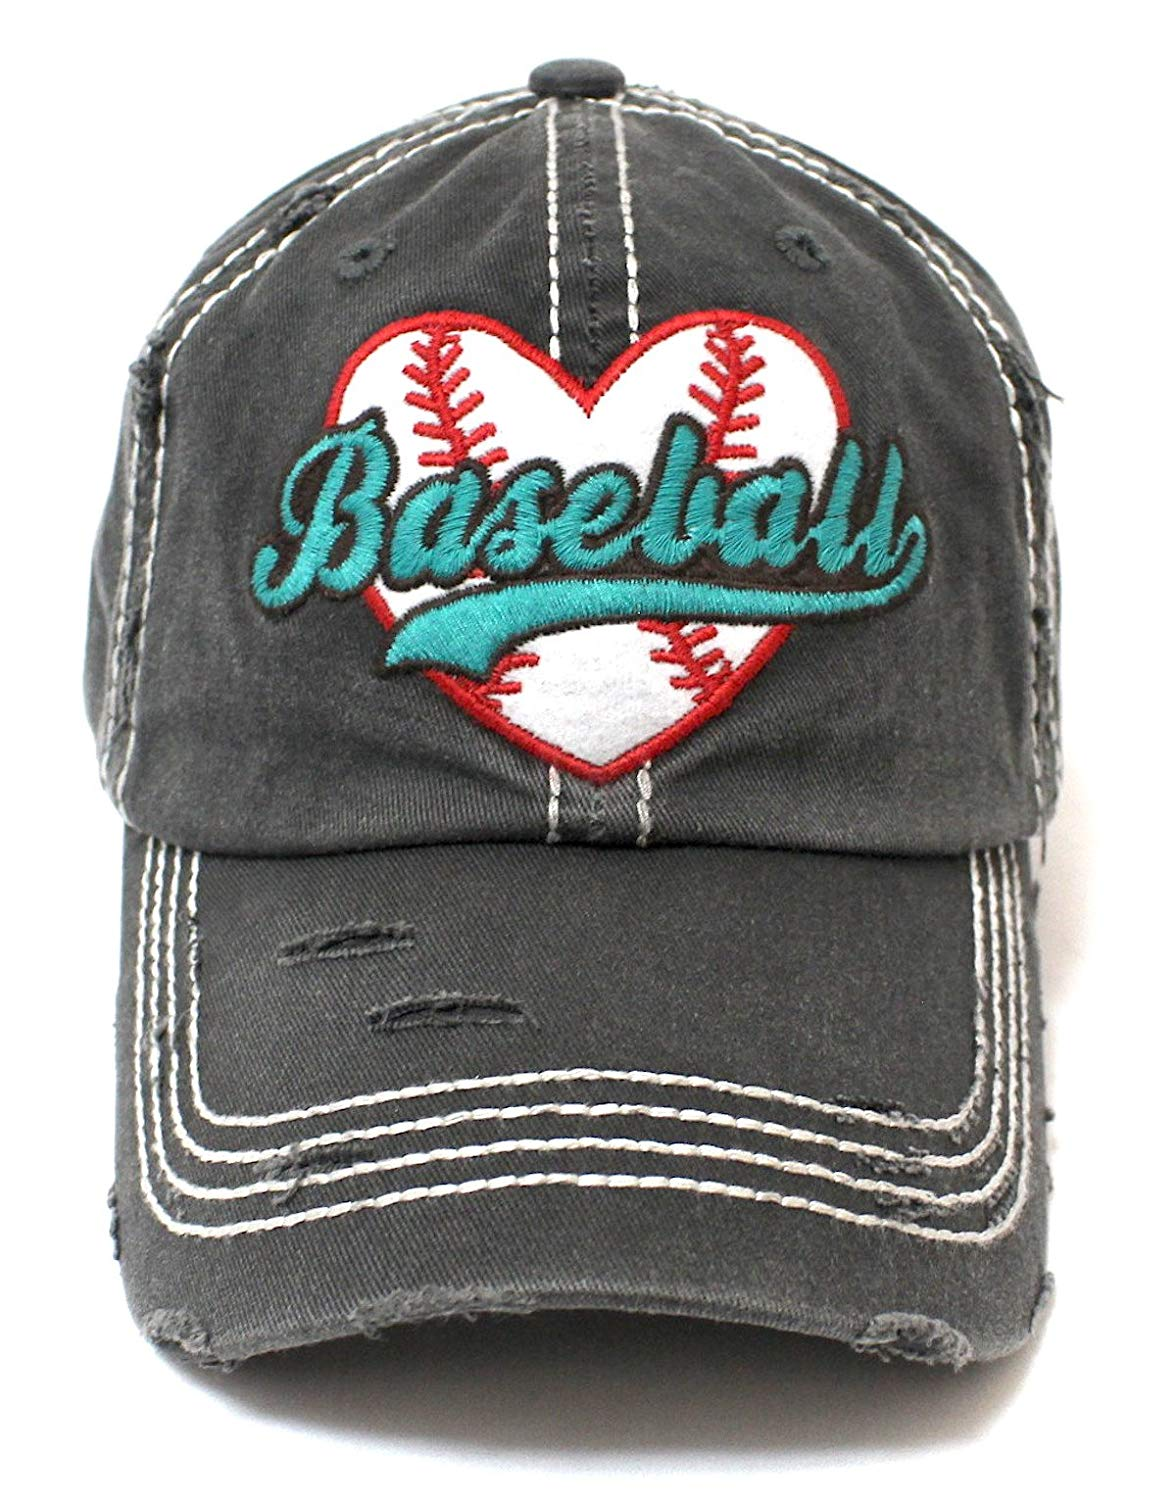 BLK Baseball Heart Patch Women's Hat - Caps 'N Vintage